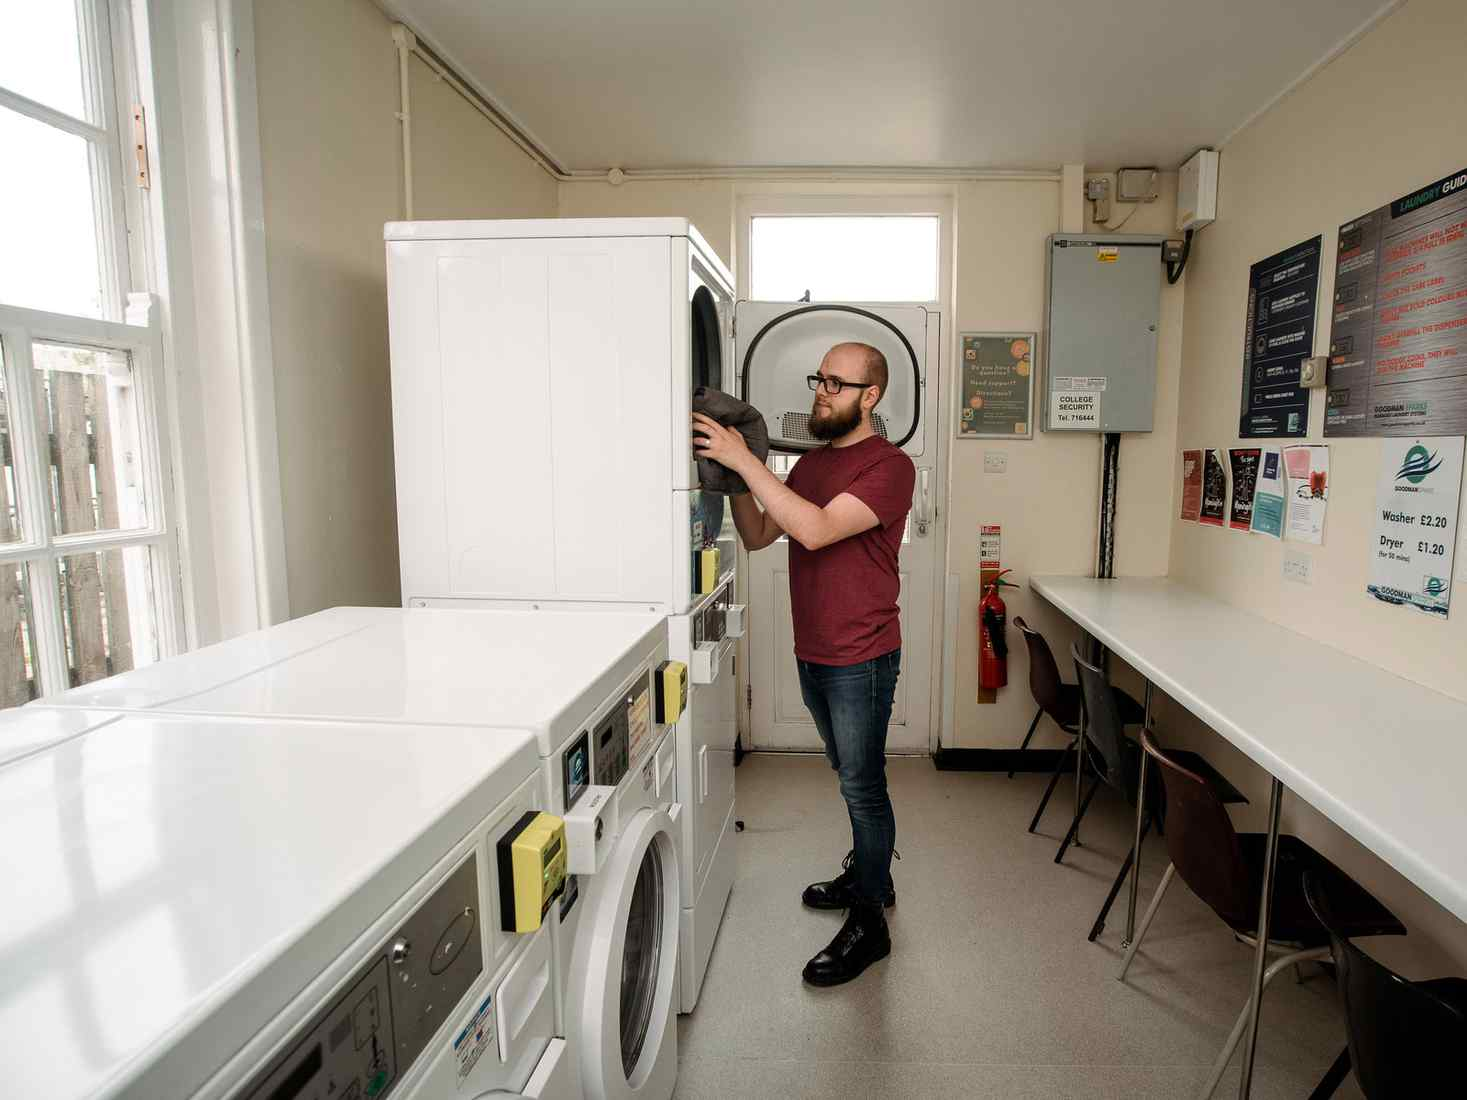 A student uses one of the washing machines in a laundry room at City Residence accommodation site.